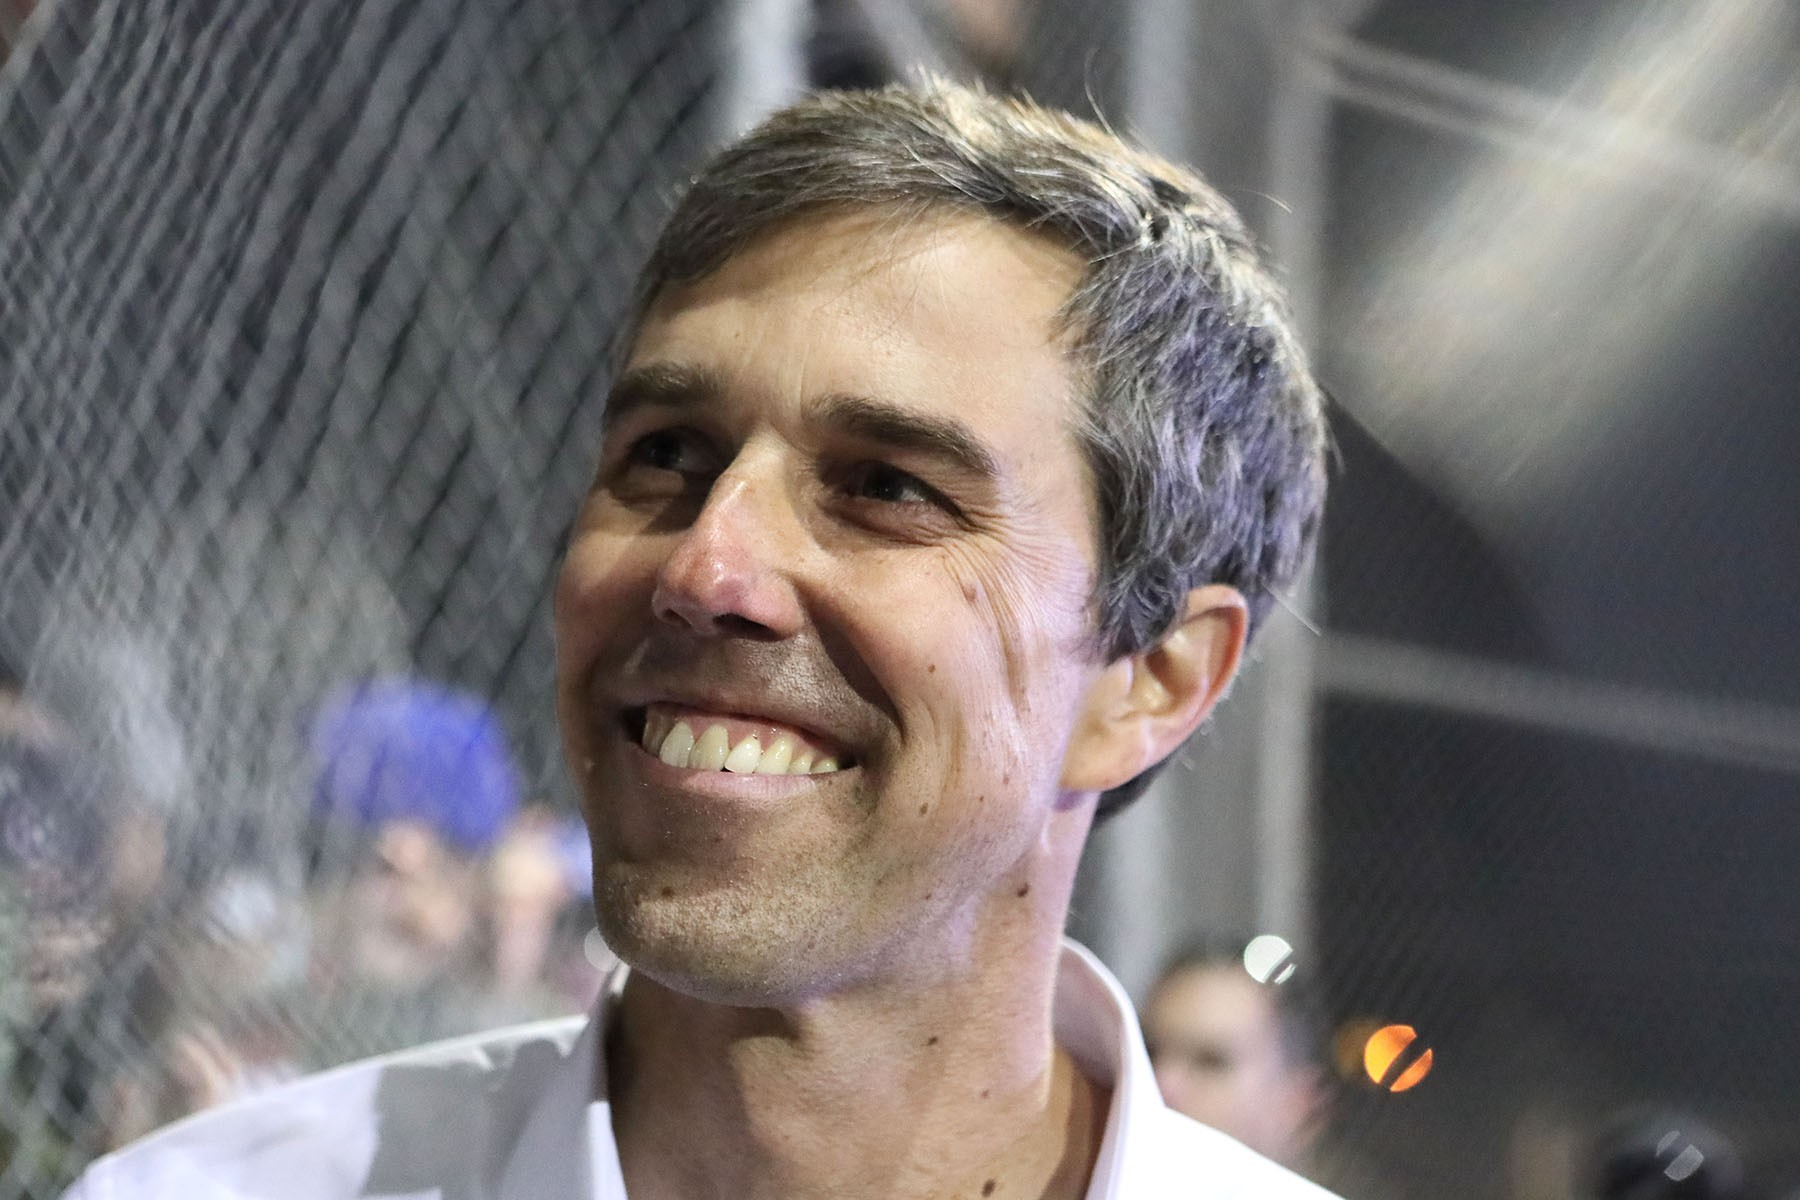 Not cool: Beto O'Rourke voted with Trump and GOP on immigration, health care